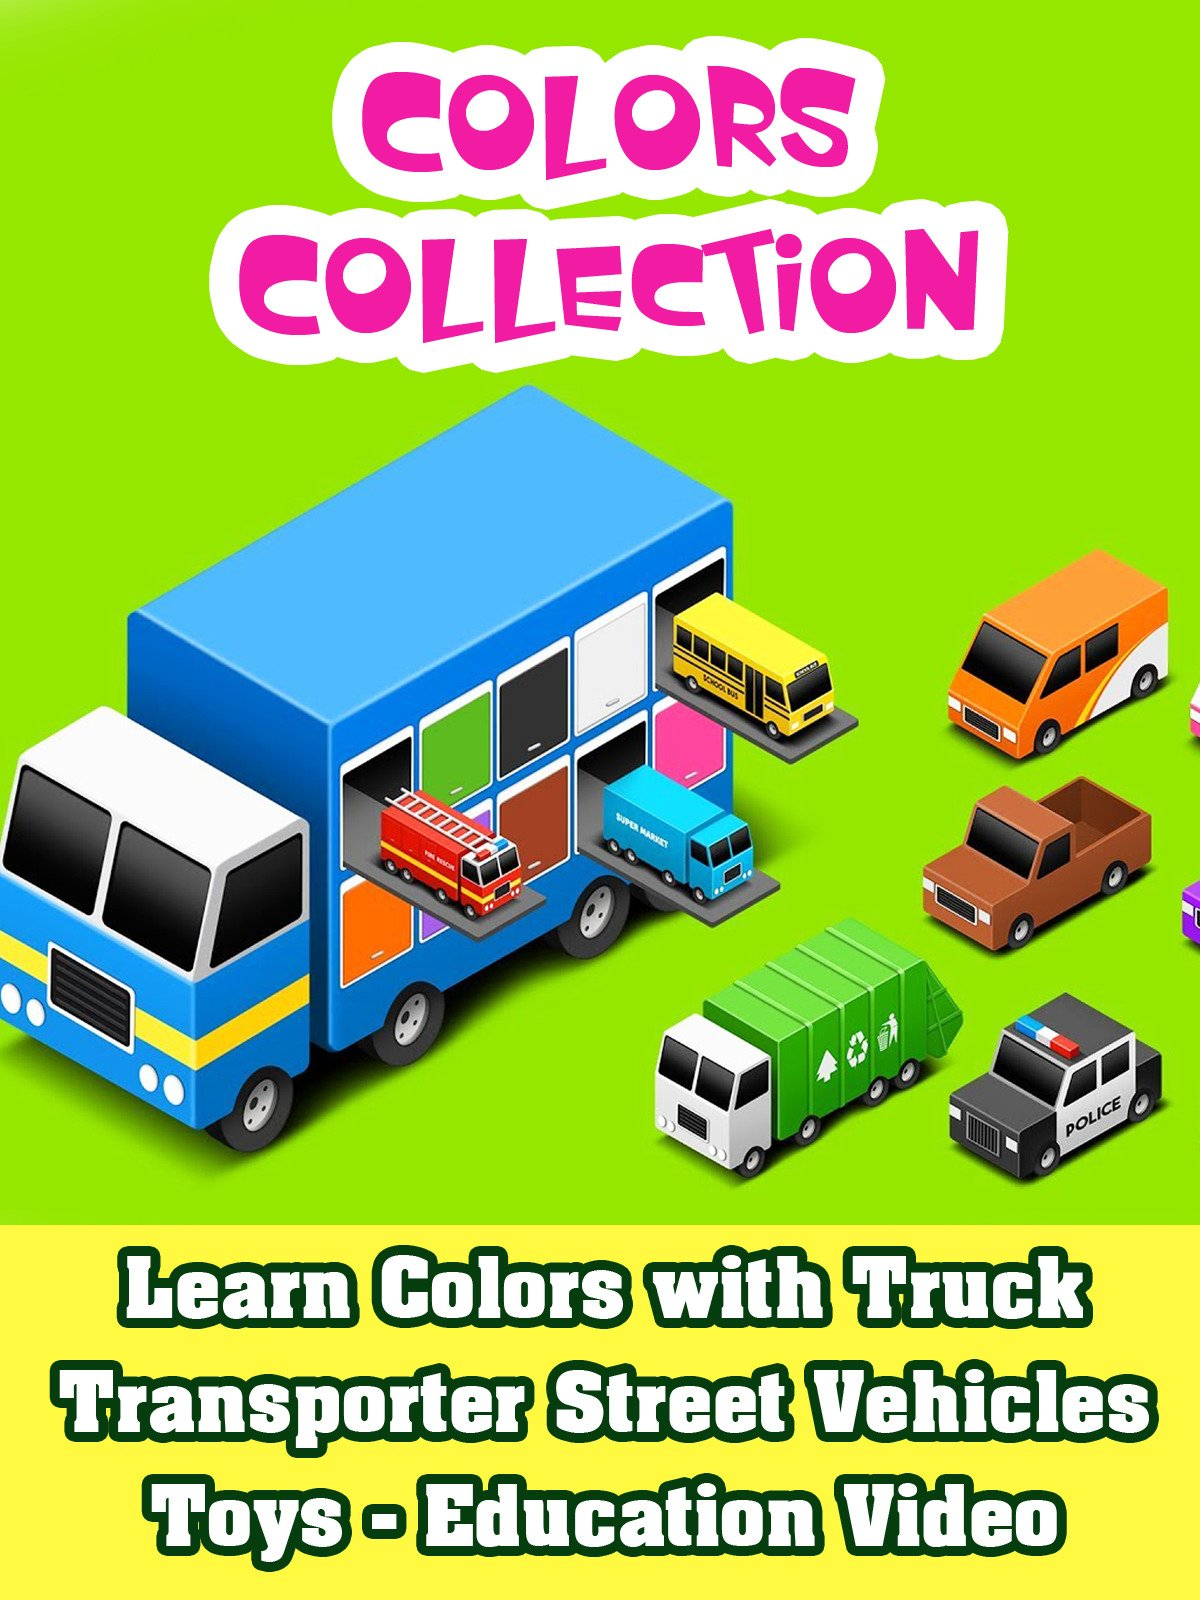 Learn Colors with Truck Transporter Street Vehicles Toys